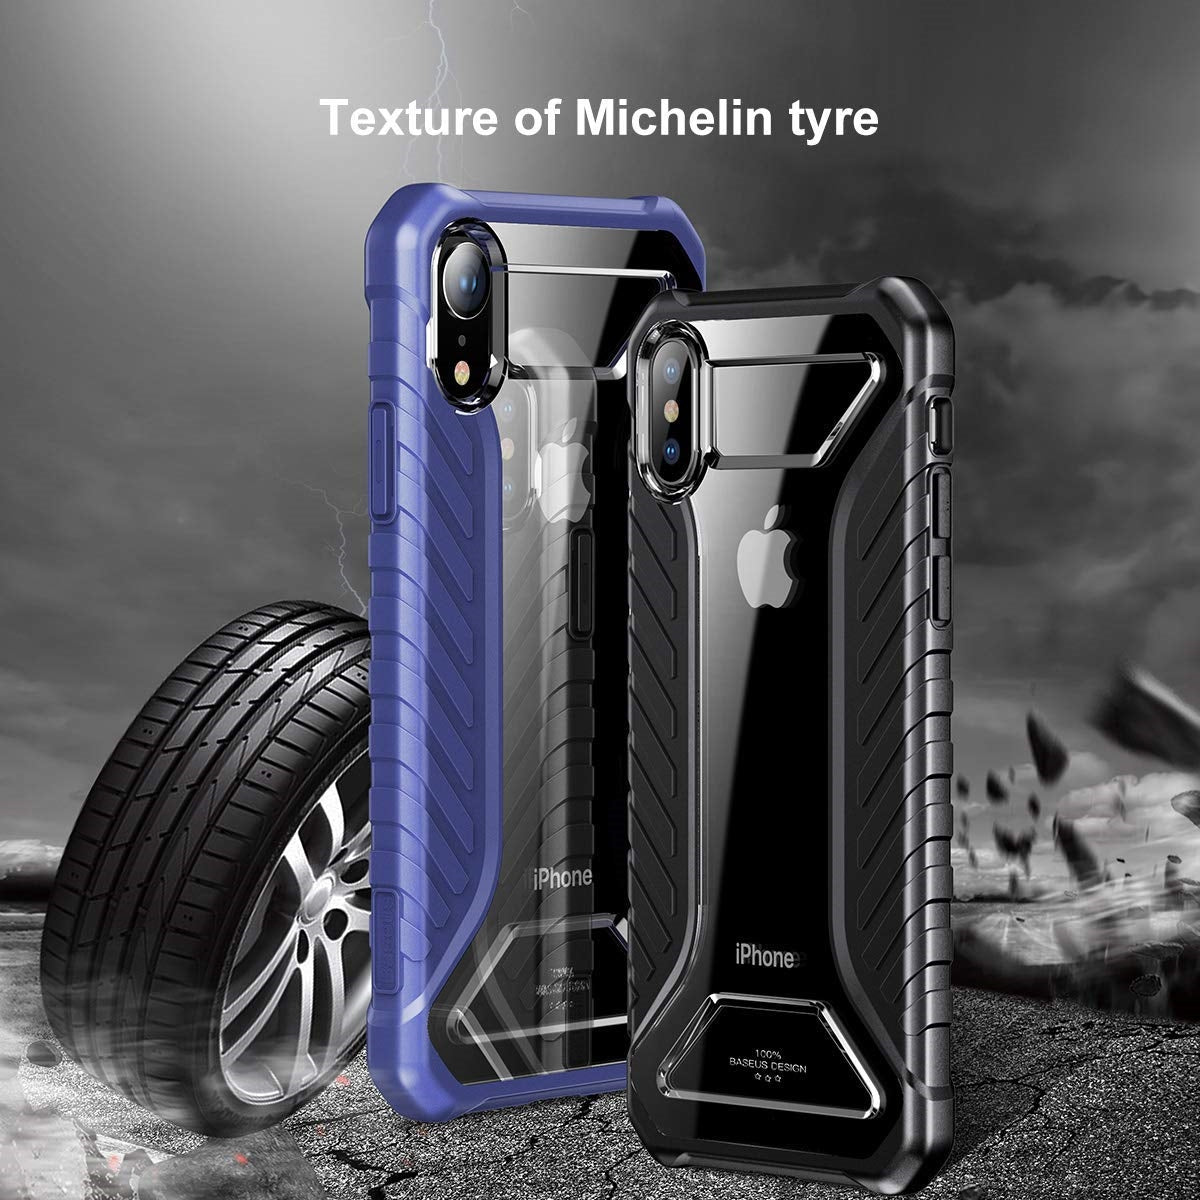 AICase iPhone X or XS Luxury Transparent Clear Back Air Cushion Technology and Secure Grip Drop Protection Protective Case